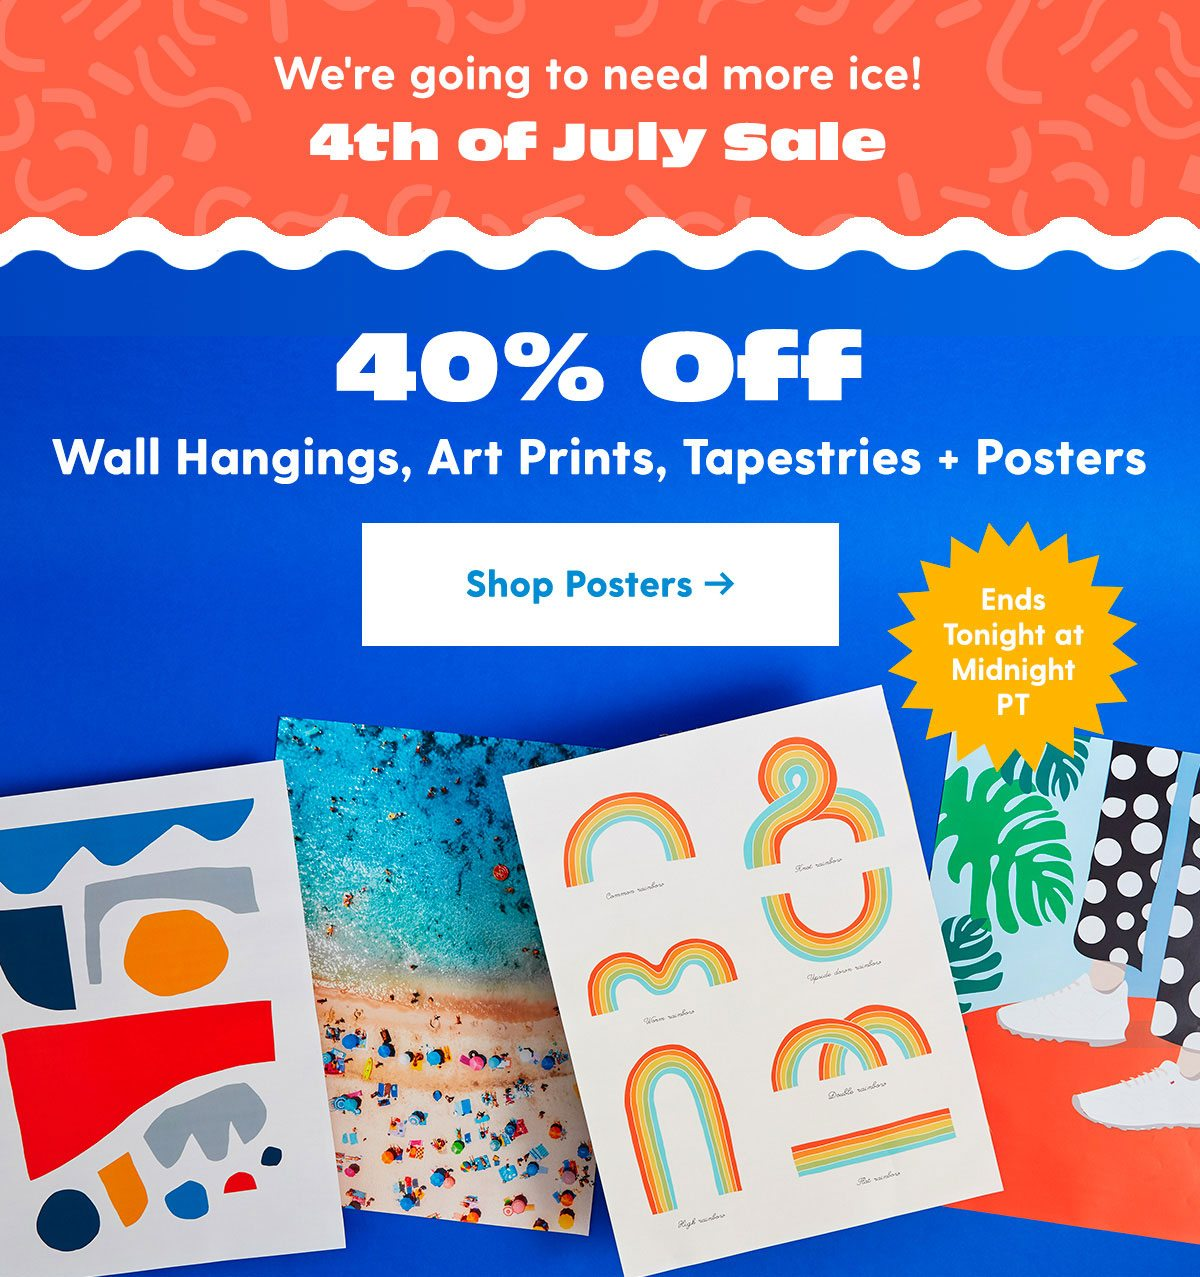 We're going to need more ice! 4th of July Sale: Extended Up to 40% Off | 40% off wall hangings, art prints, tapestries, posters | Shop Posters >